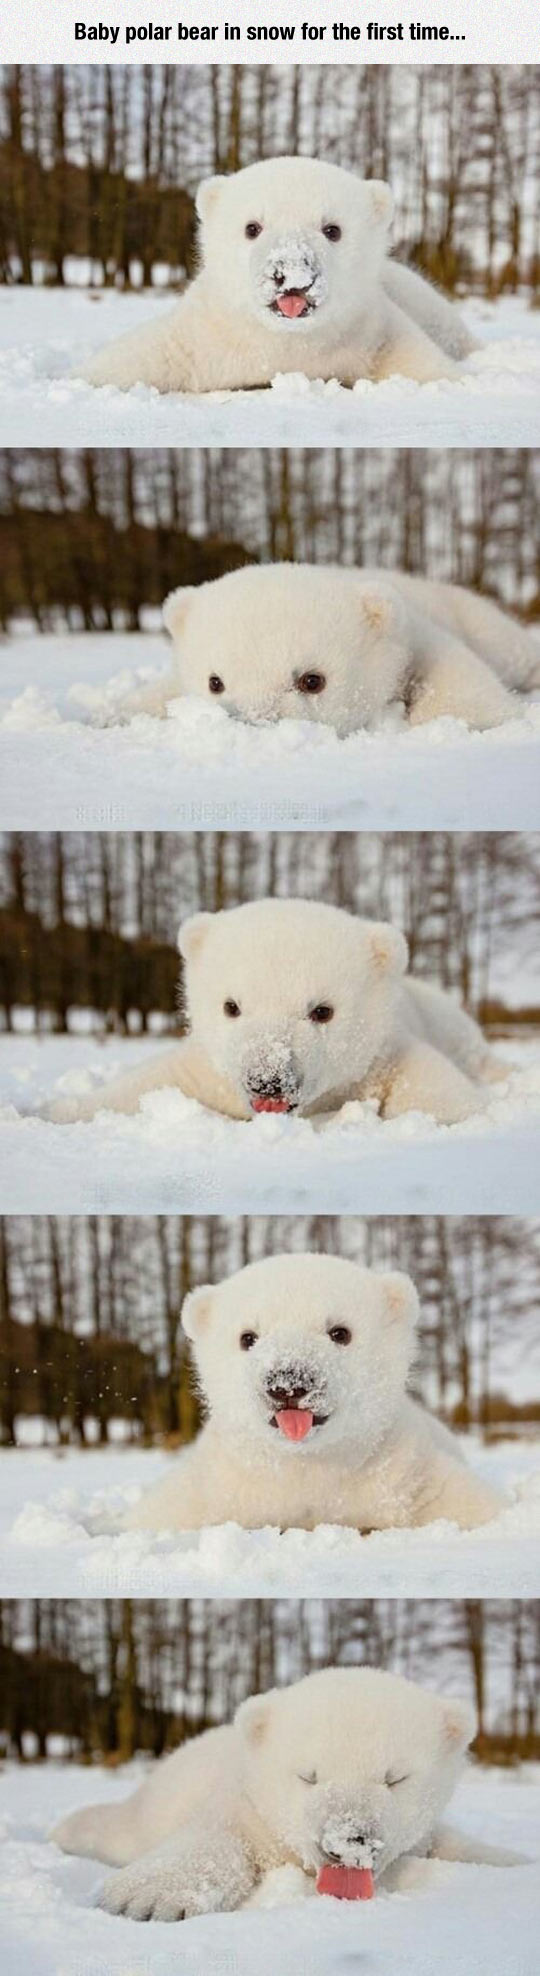 Baby Polar Bear Enjoying The Snow